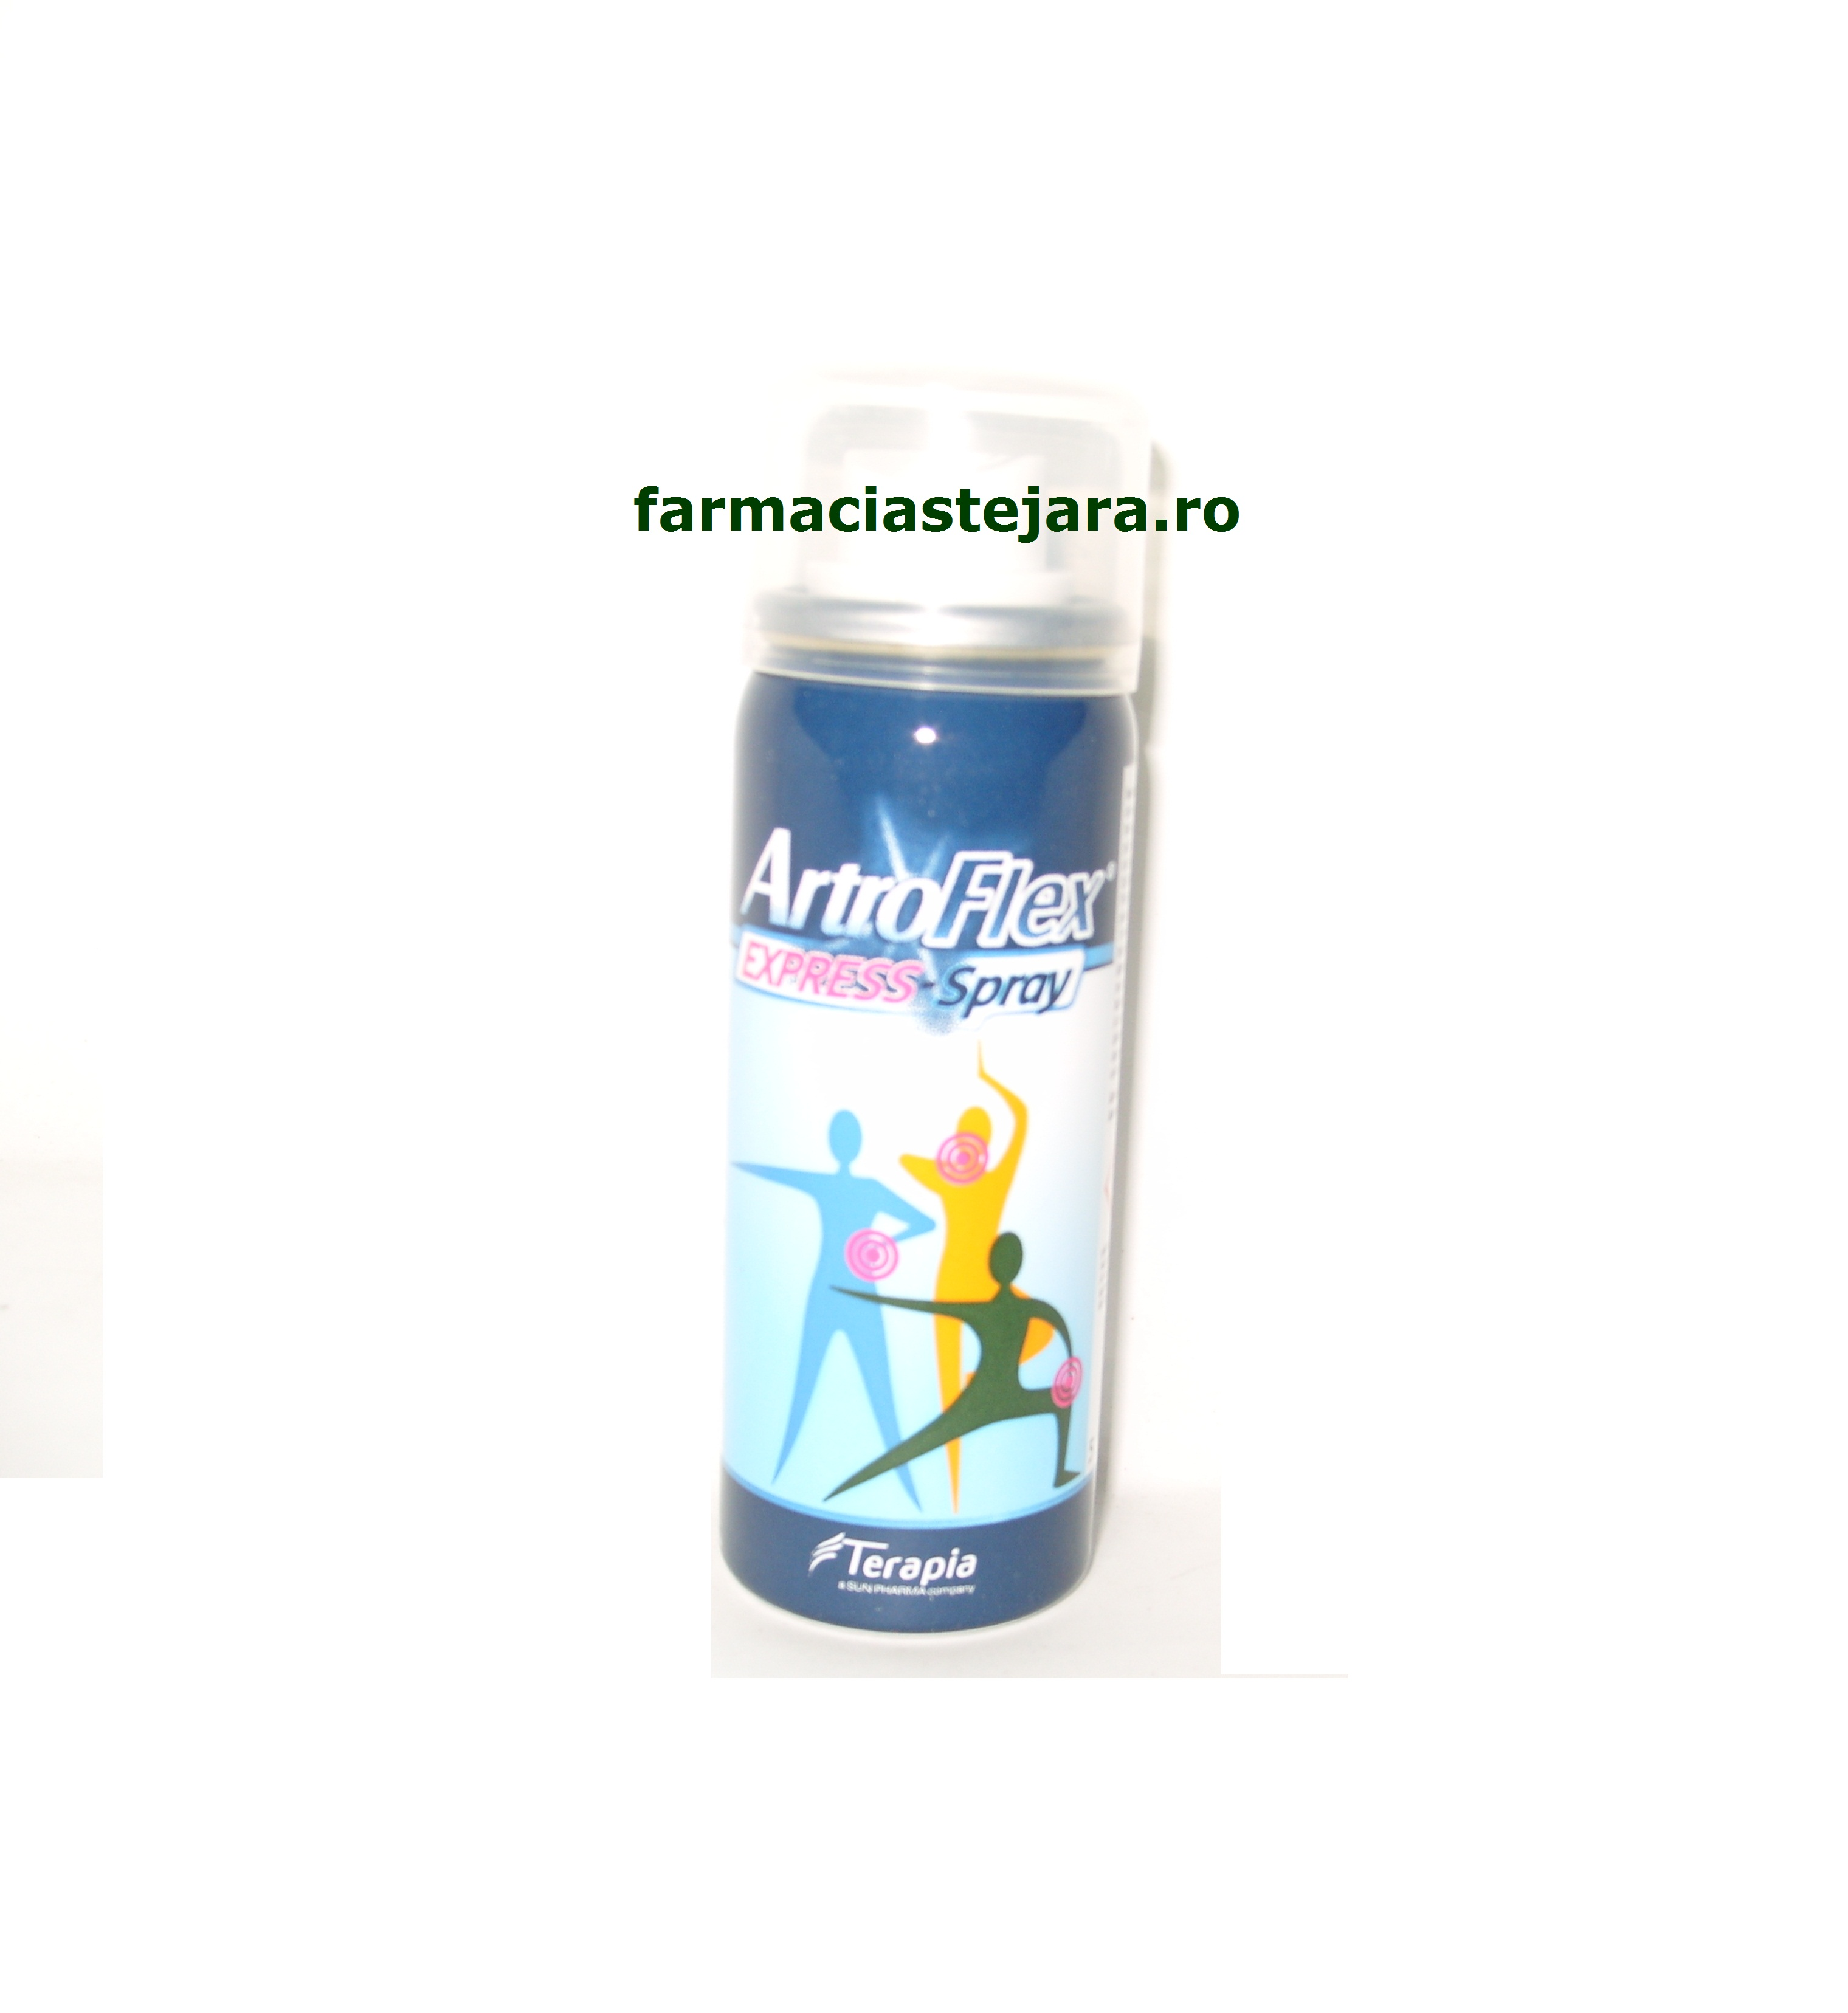 ArtroFlex Express Spray 50ml